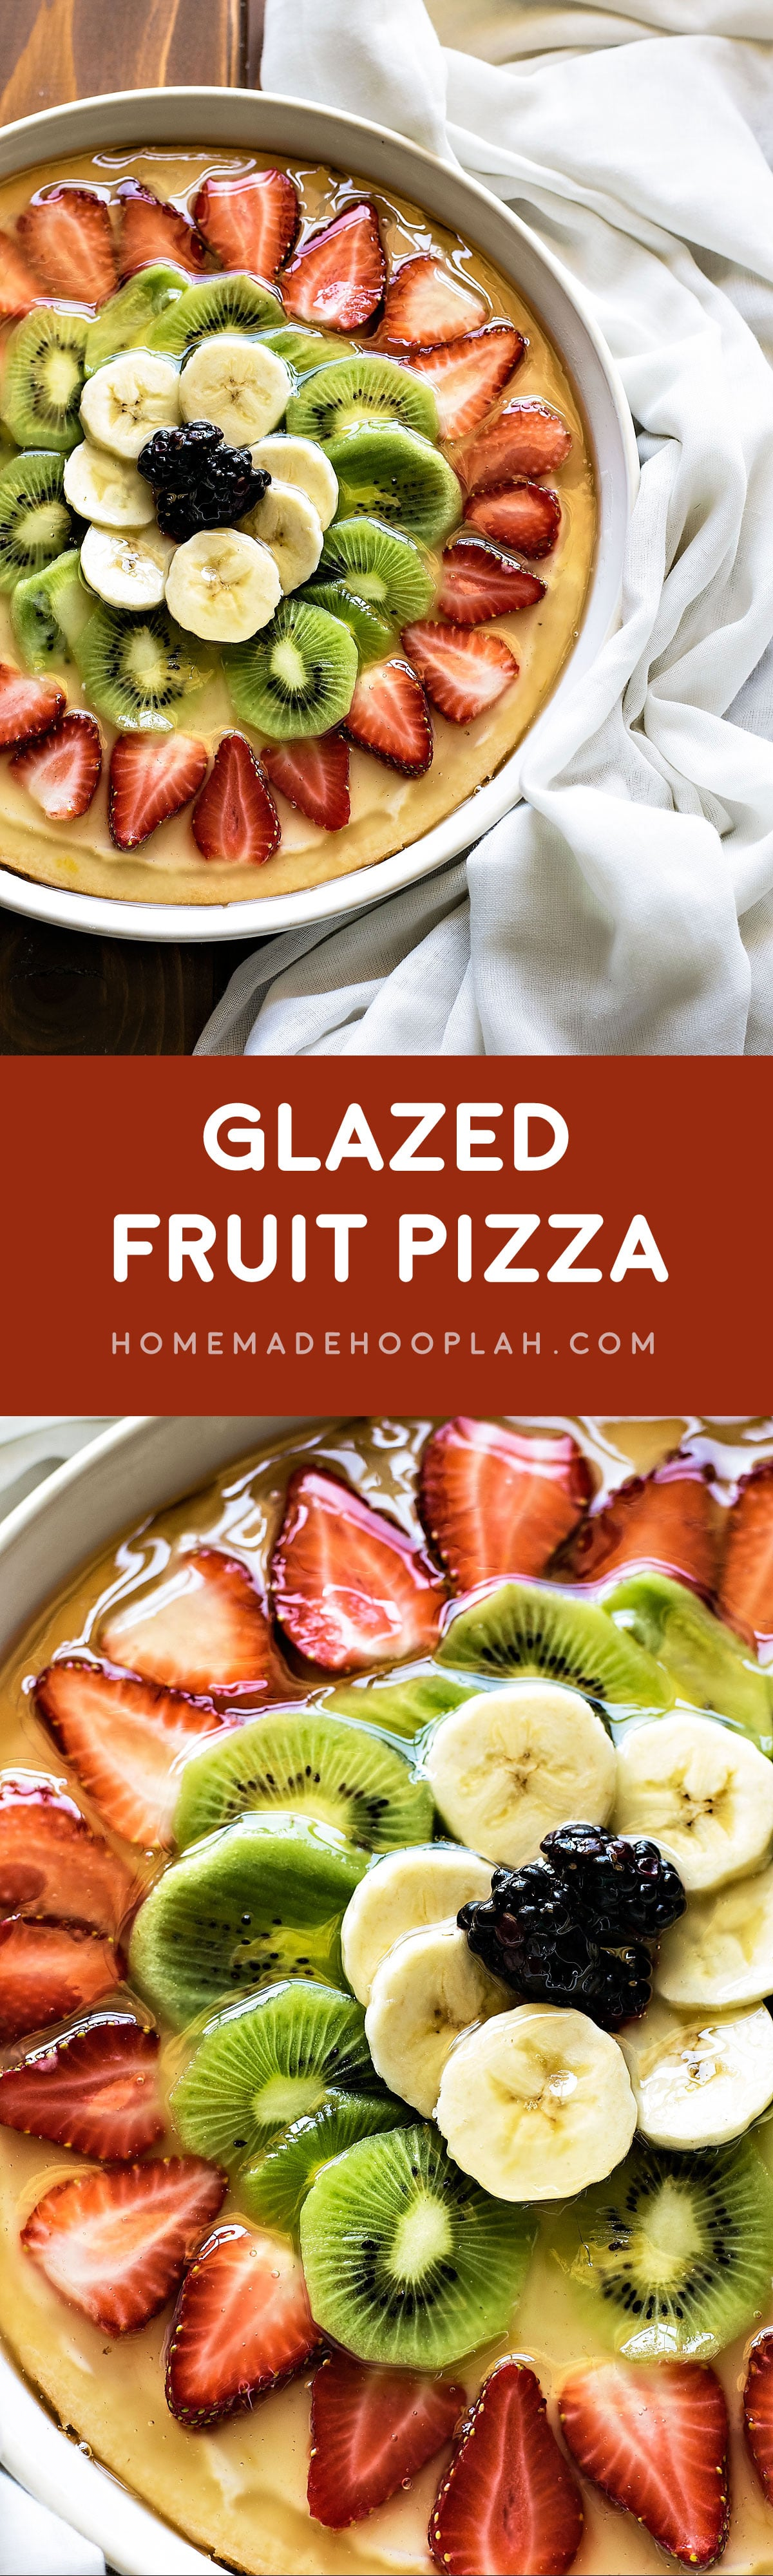 Glazed Fruit Pizza! Make fruit pizza your way with a sweet cream cheese